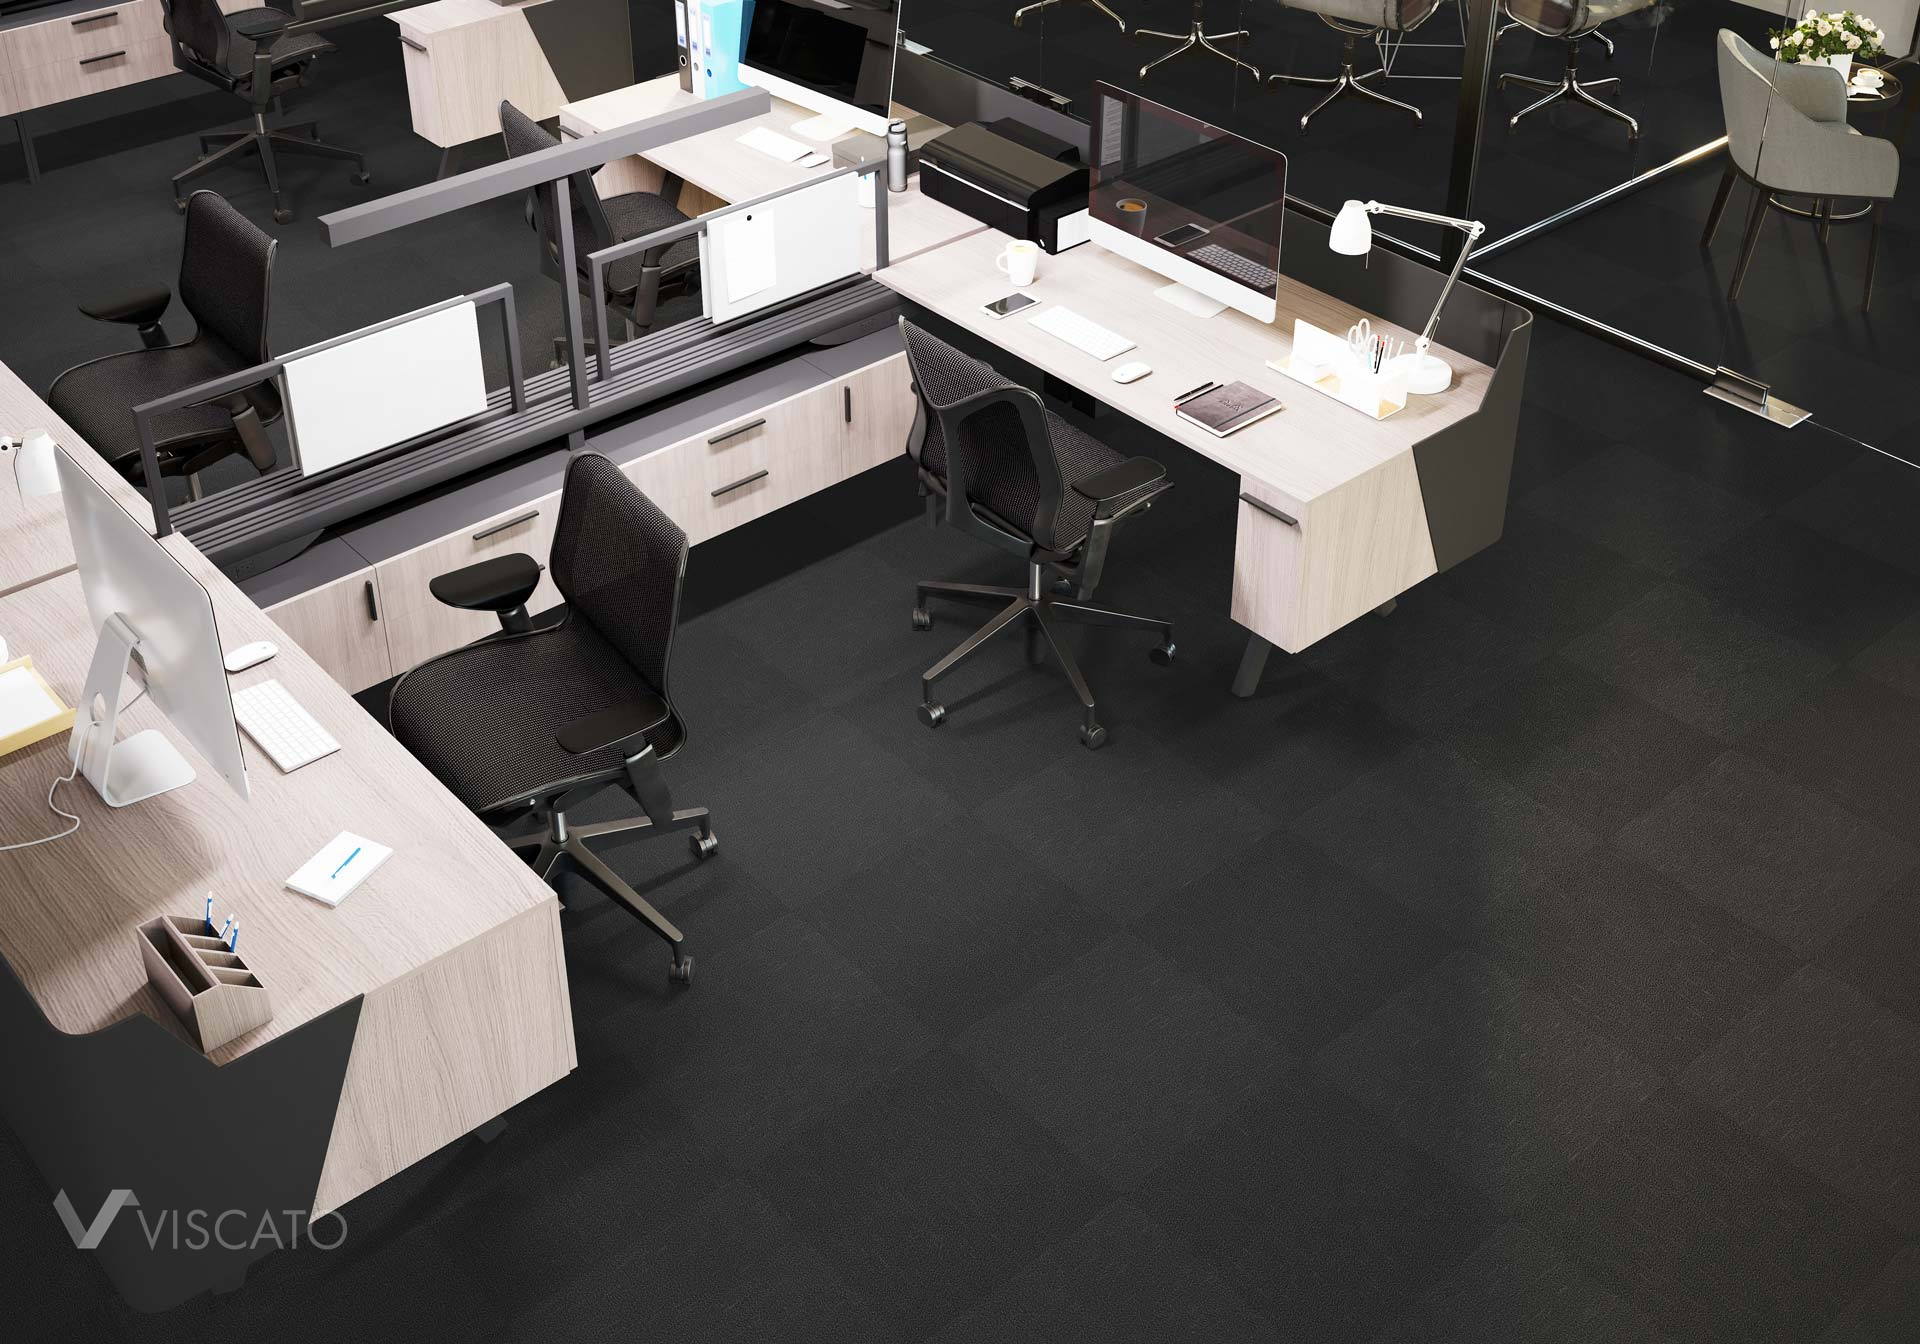 carpet tiles in new office, product in 3D